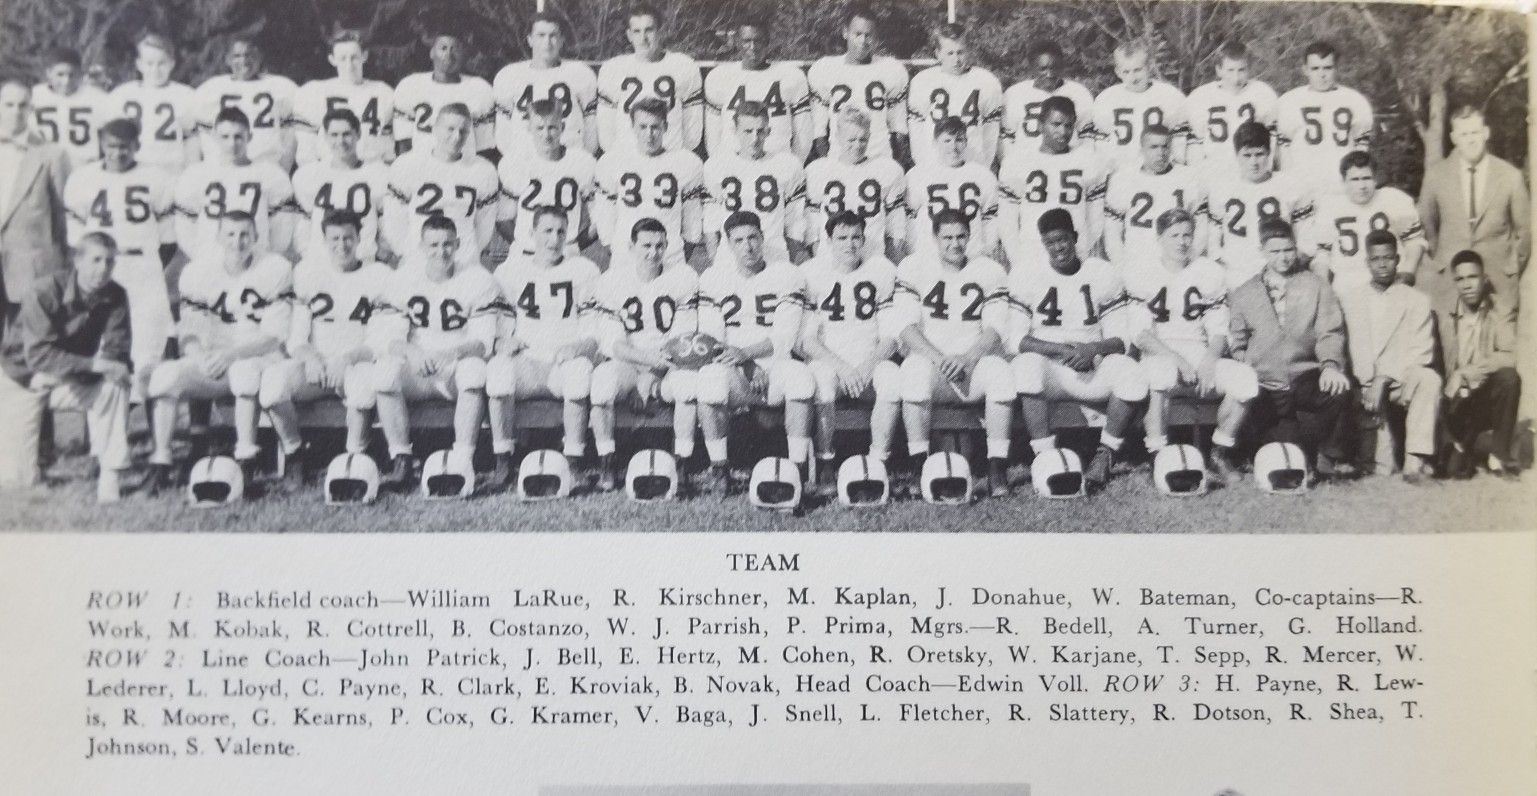 1956 lakewood piners football squad team photo with